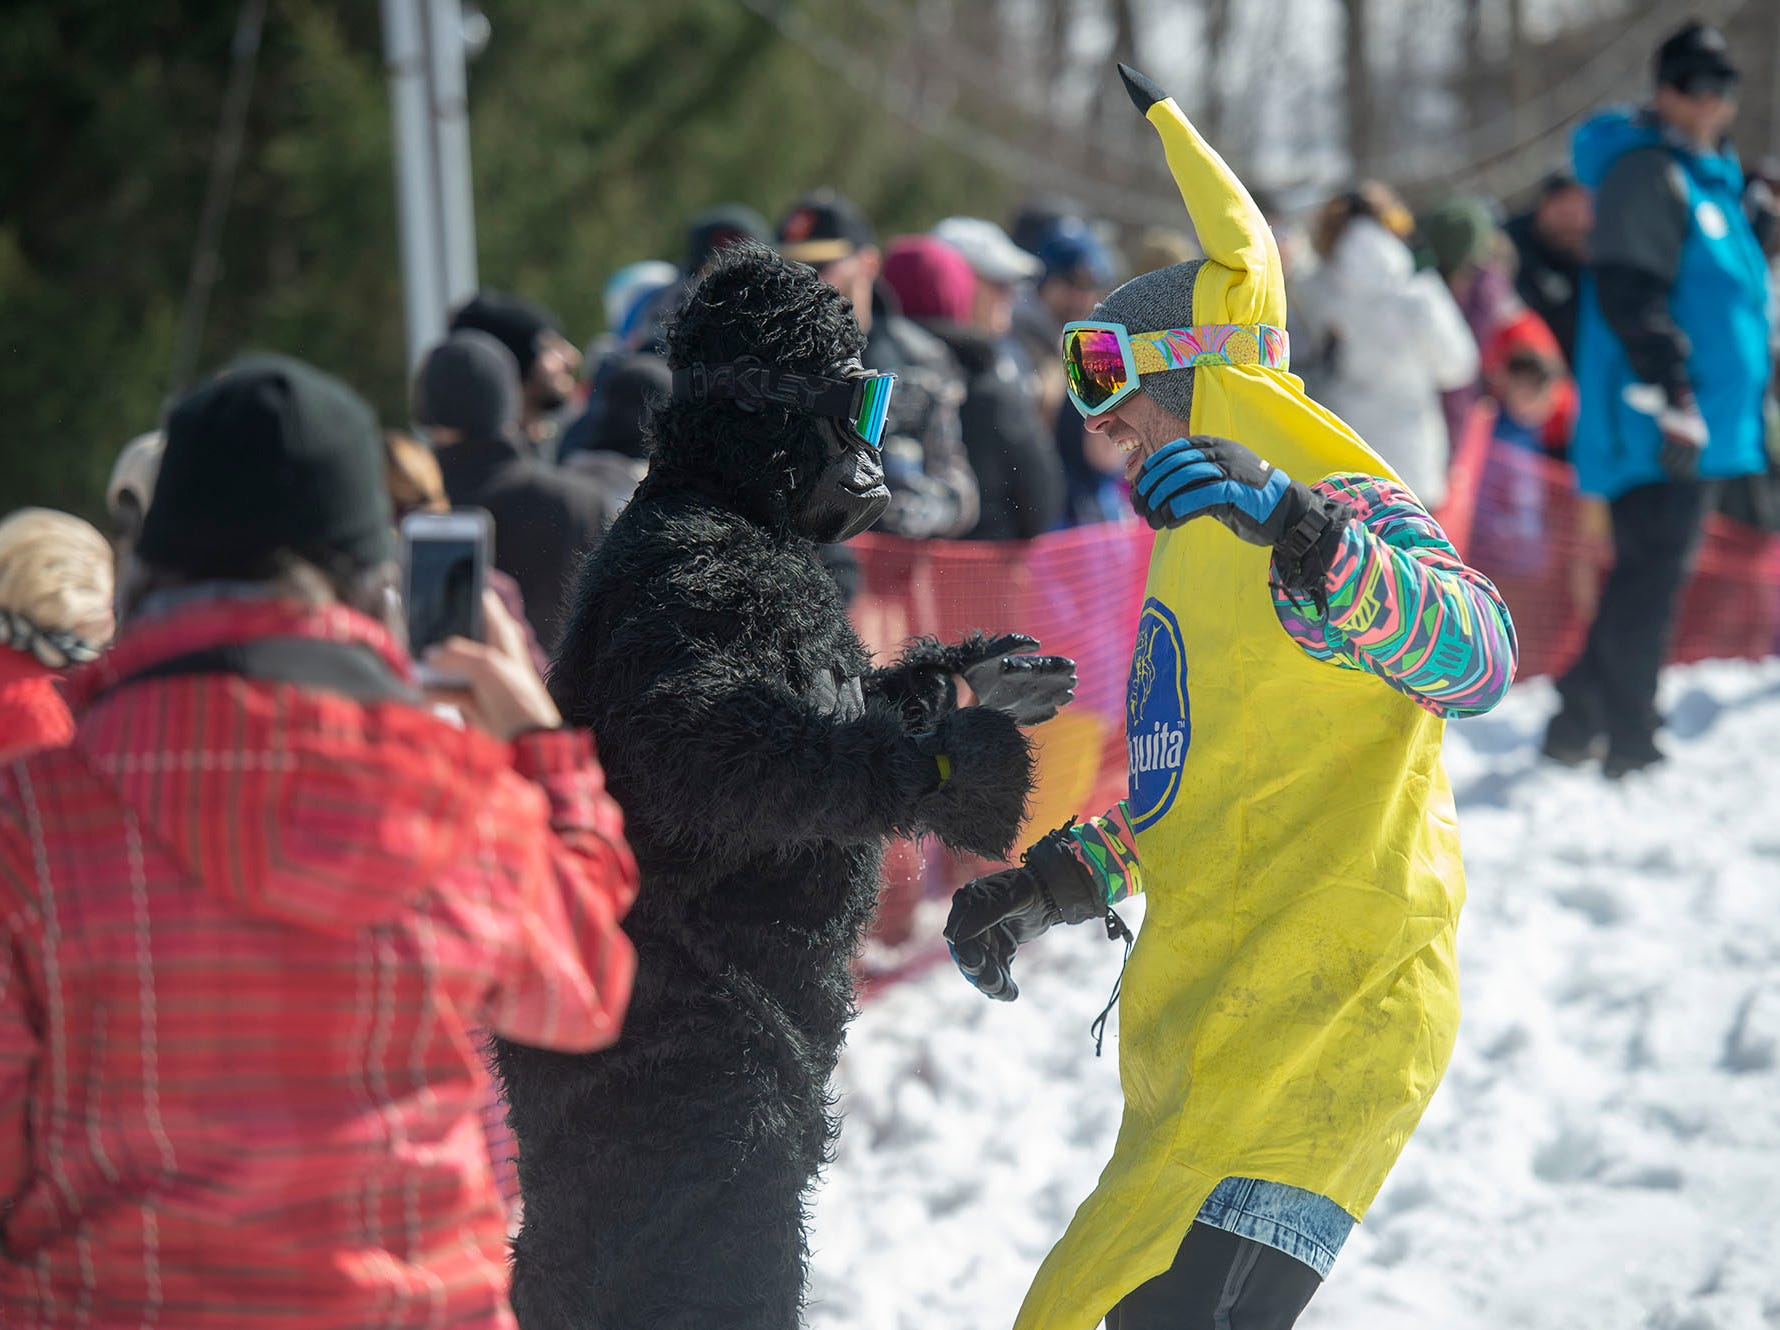 What better to follow a banana than a gorilla at Roundtop Mountain Resort on Saturday, March 16, 2019. Both made it across the pond.